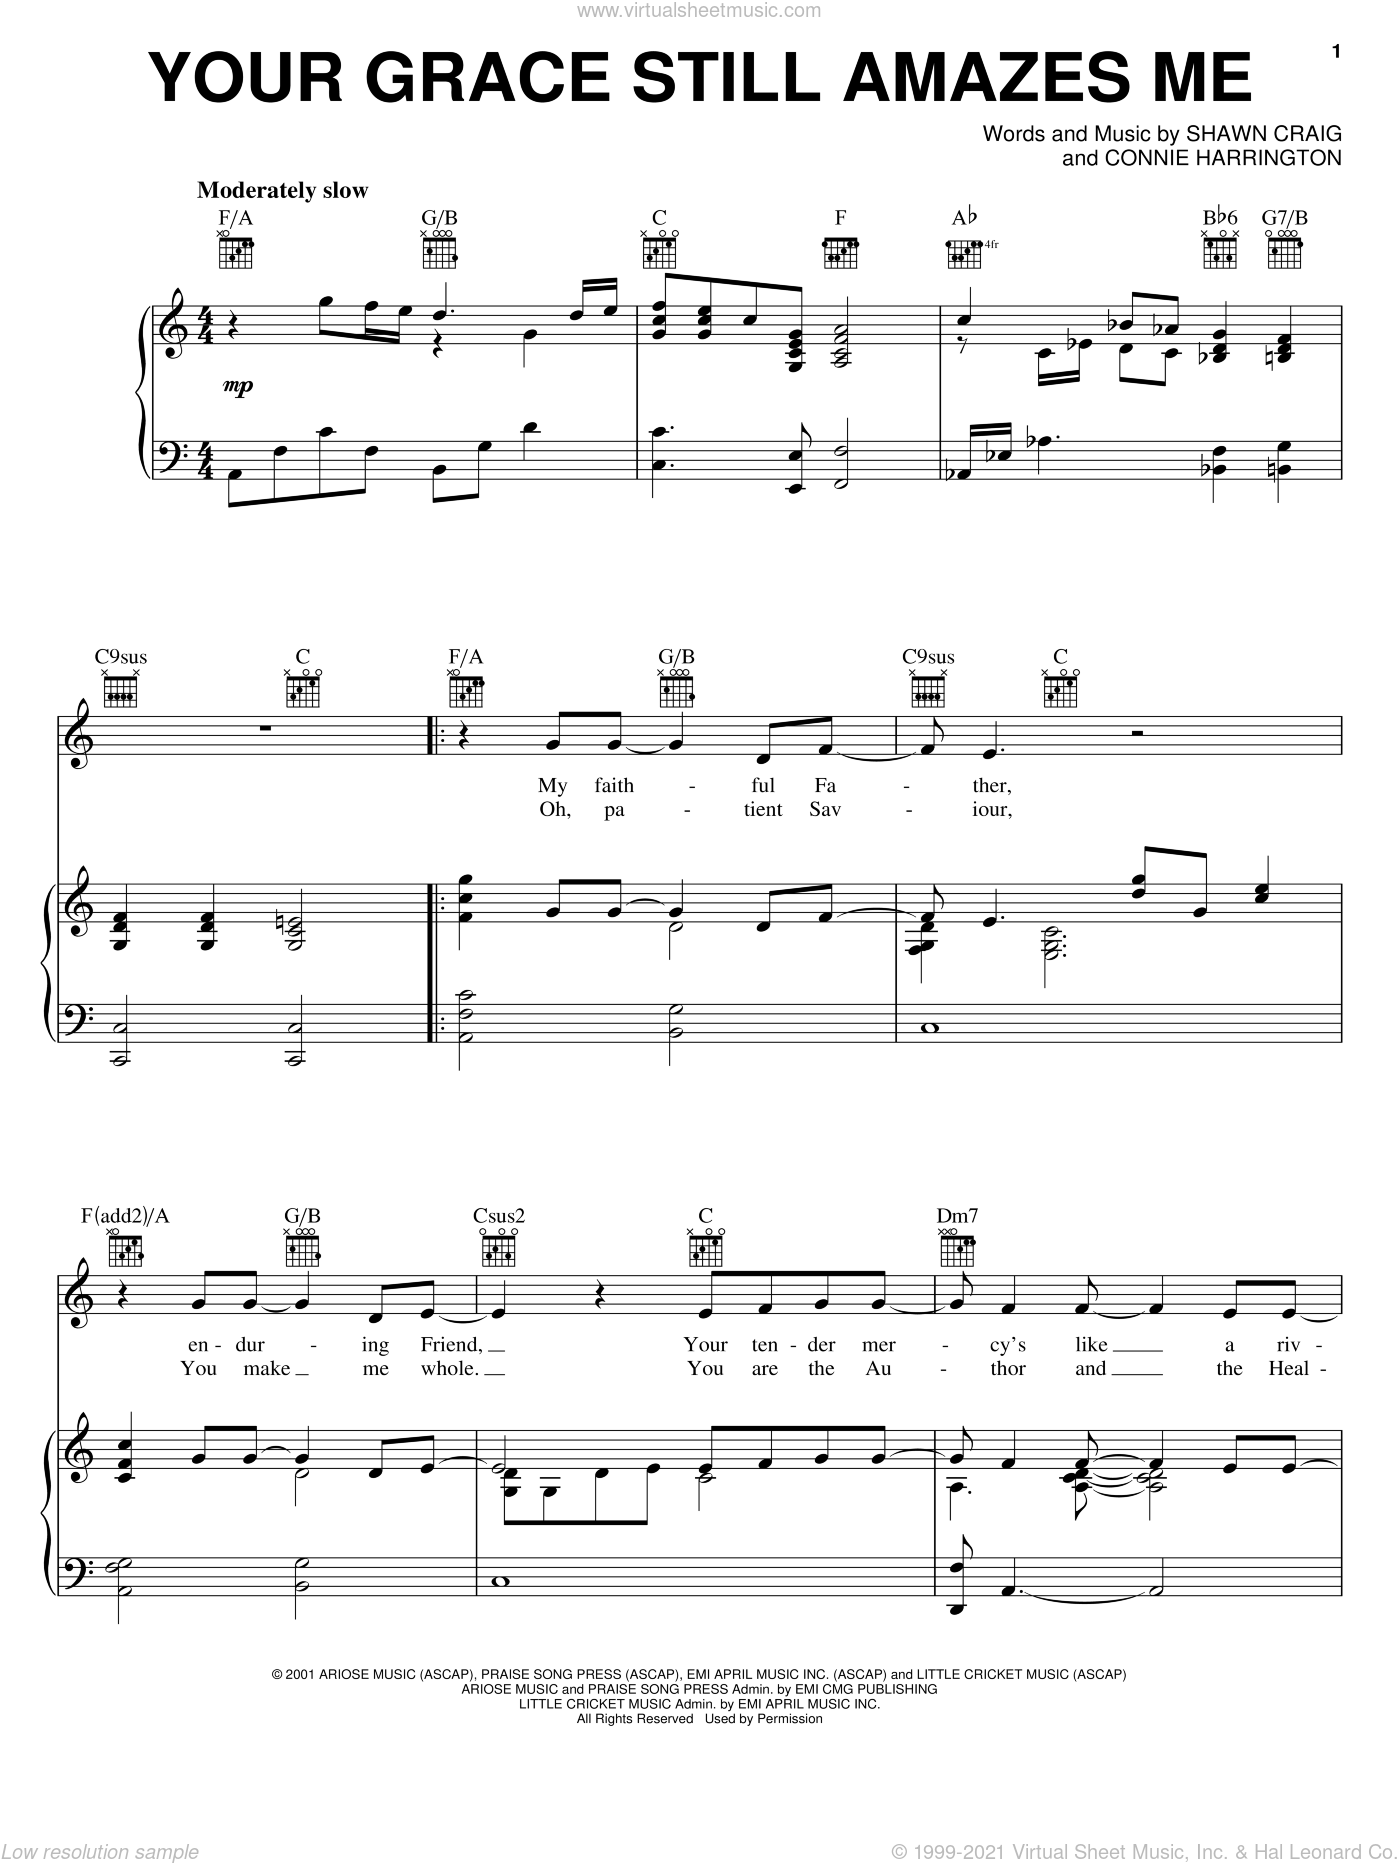 Your Grace Still Amazes Me sheet music for voice, piano or guitar by Phillips, Craig & Dean, Connie Harrington and Shawn Craig, intermediate skill level